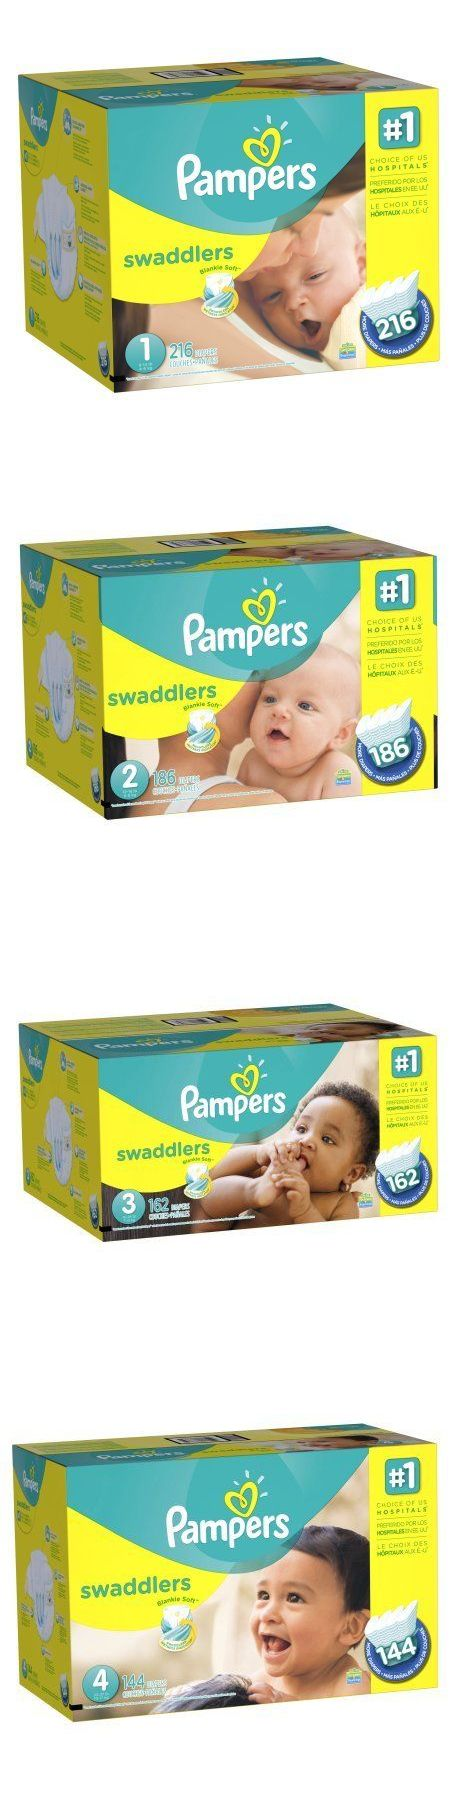 13 Best Oh Baby Images On Pinterest Babys Free Diapers And Infant Sweety Popok Bayi Comfort Gold Tape M 48 Disposable 15559 Pampers Swaddlers Economy Pack Plus Size 1 2 3 4